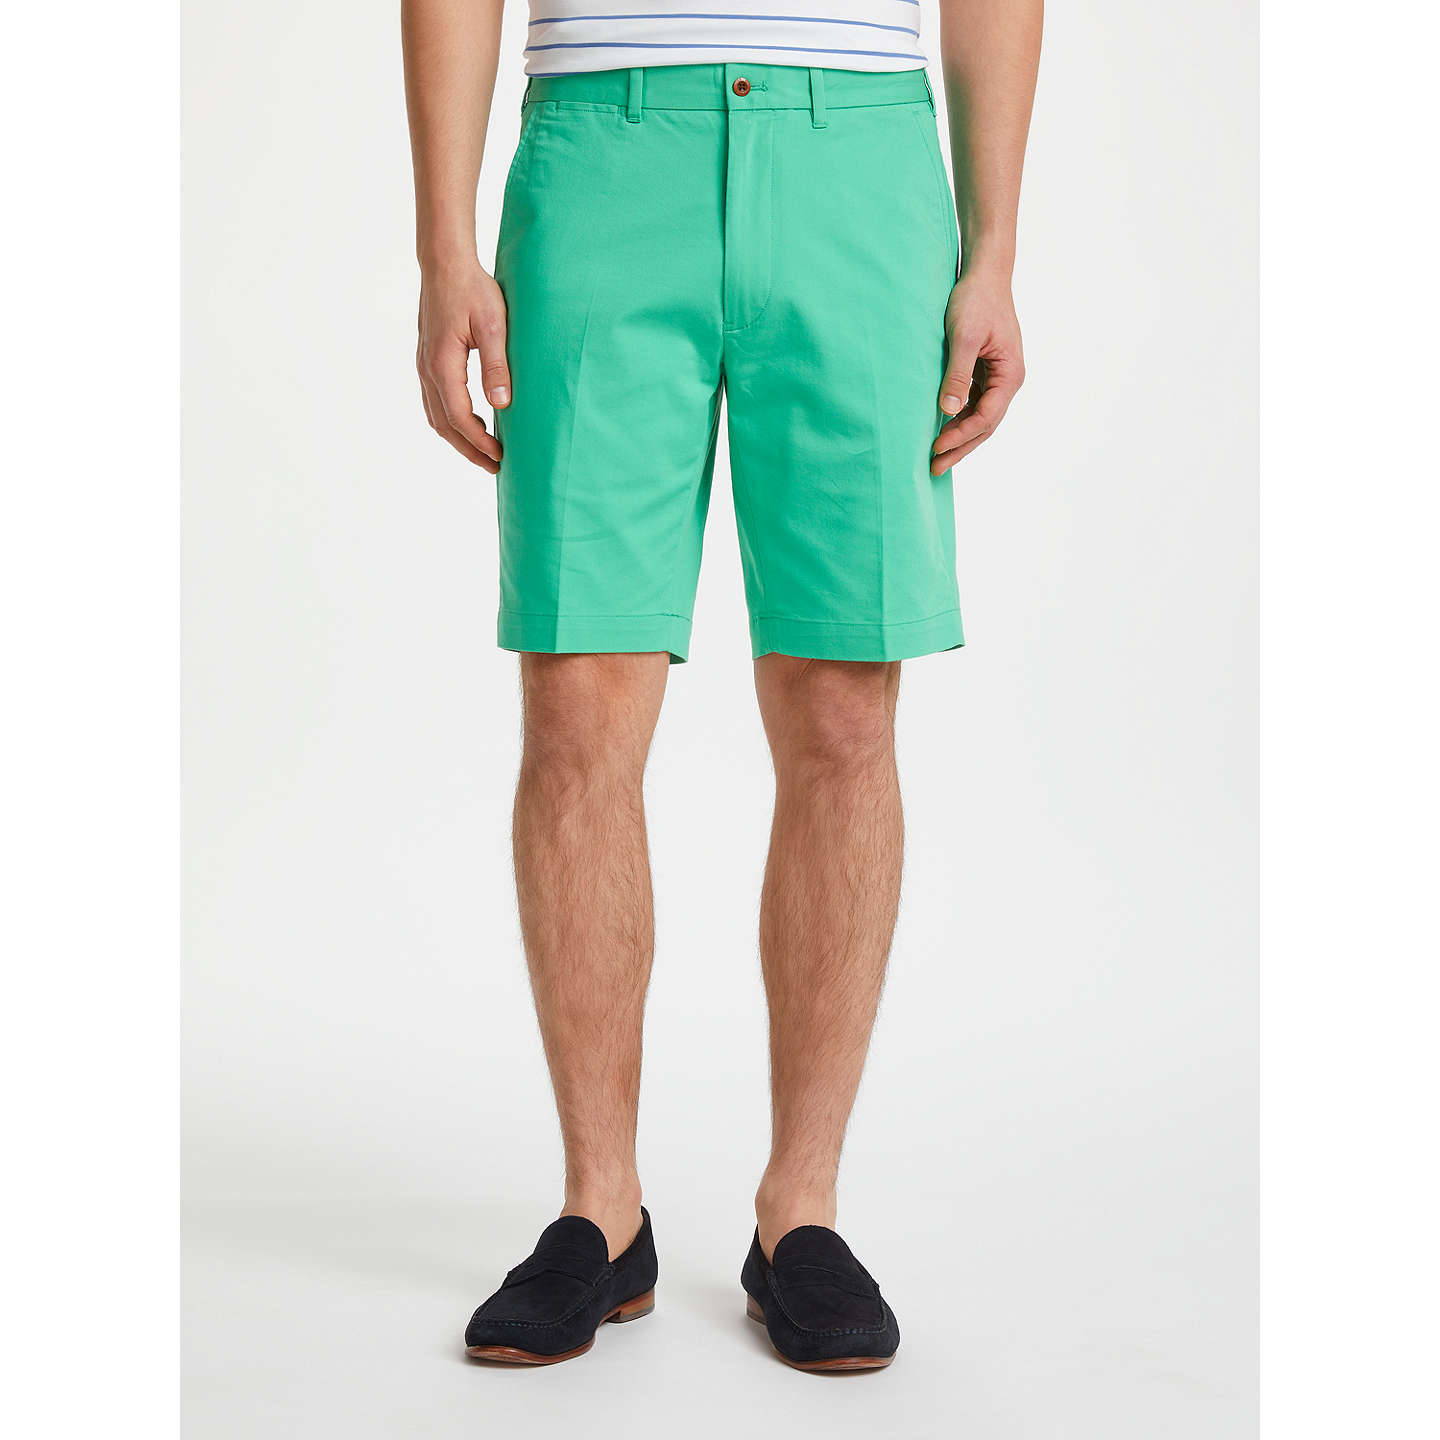 BuyPolo Golf by Ralph Lauren Athletic Shorts, Plato Green, 32R Online at johnlewis.com